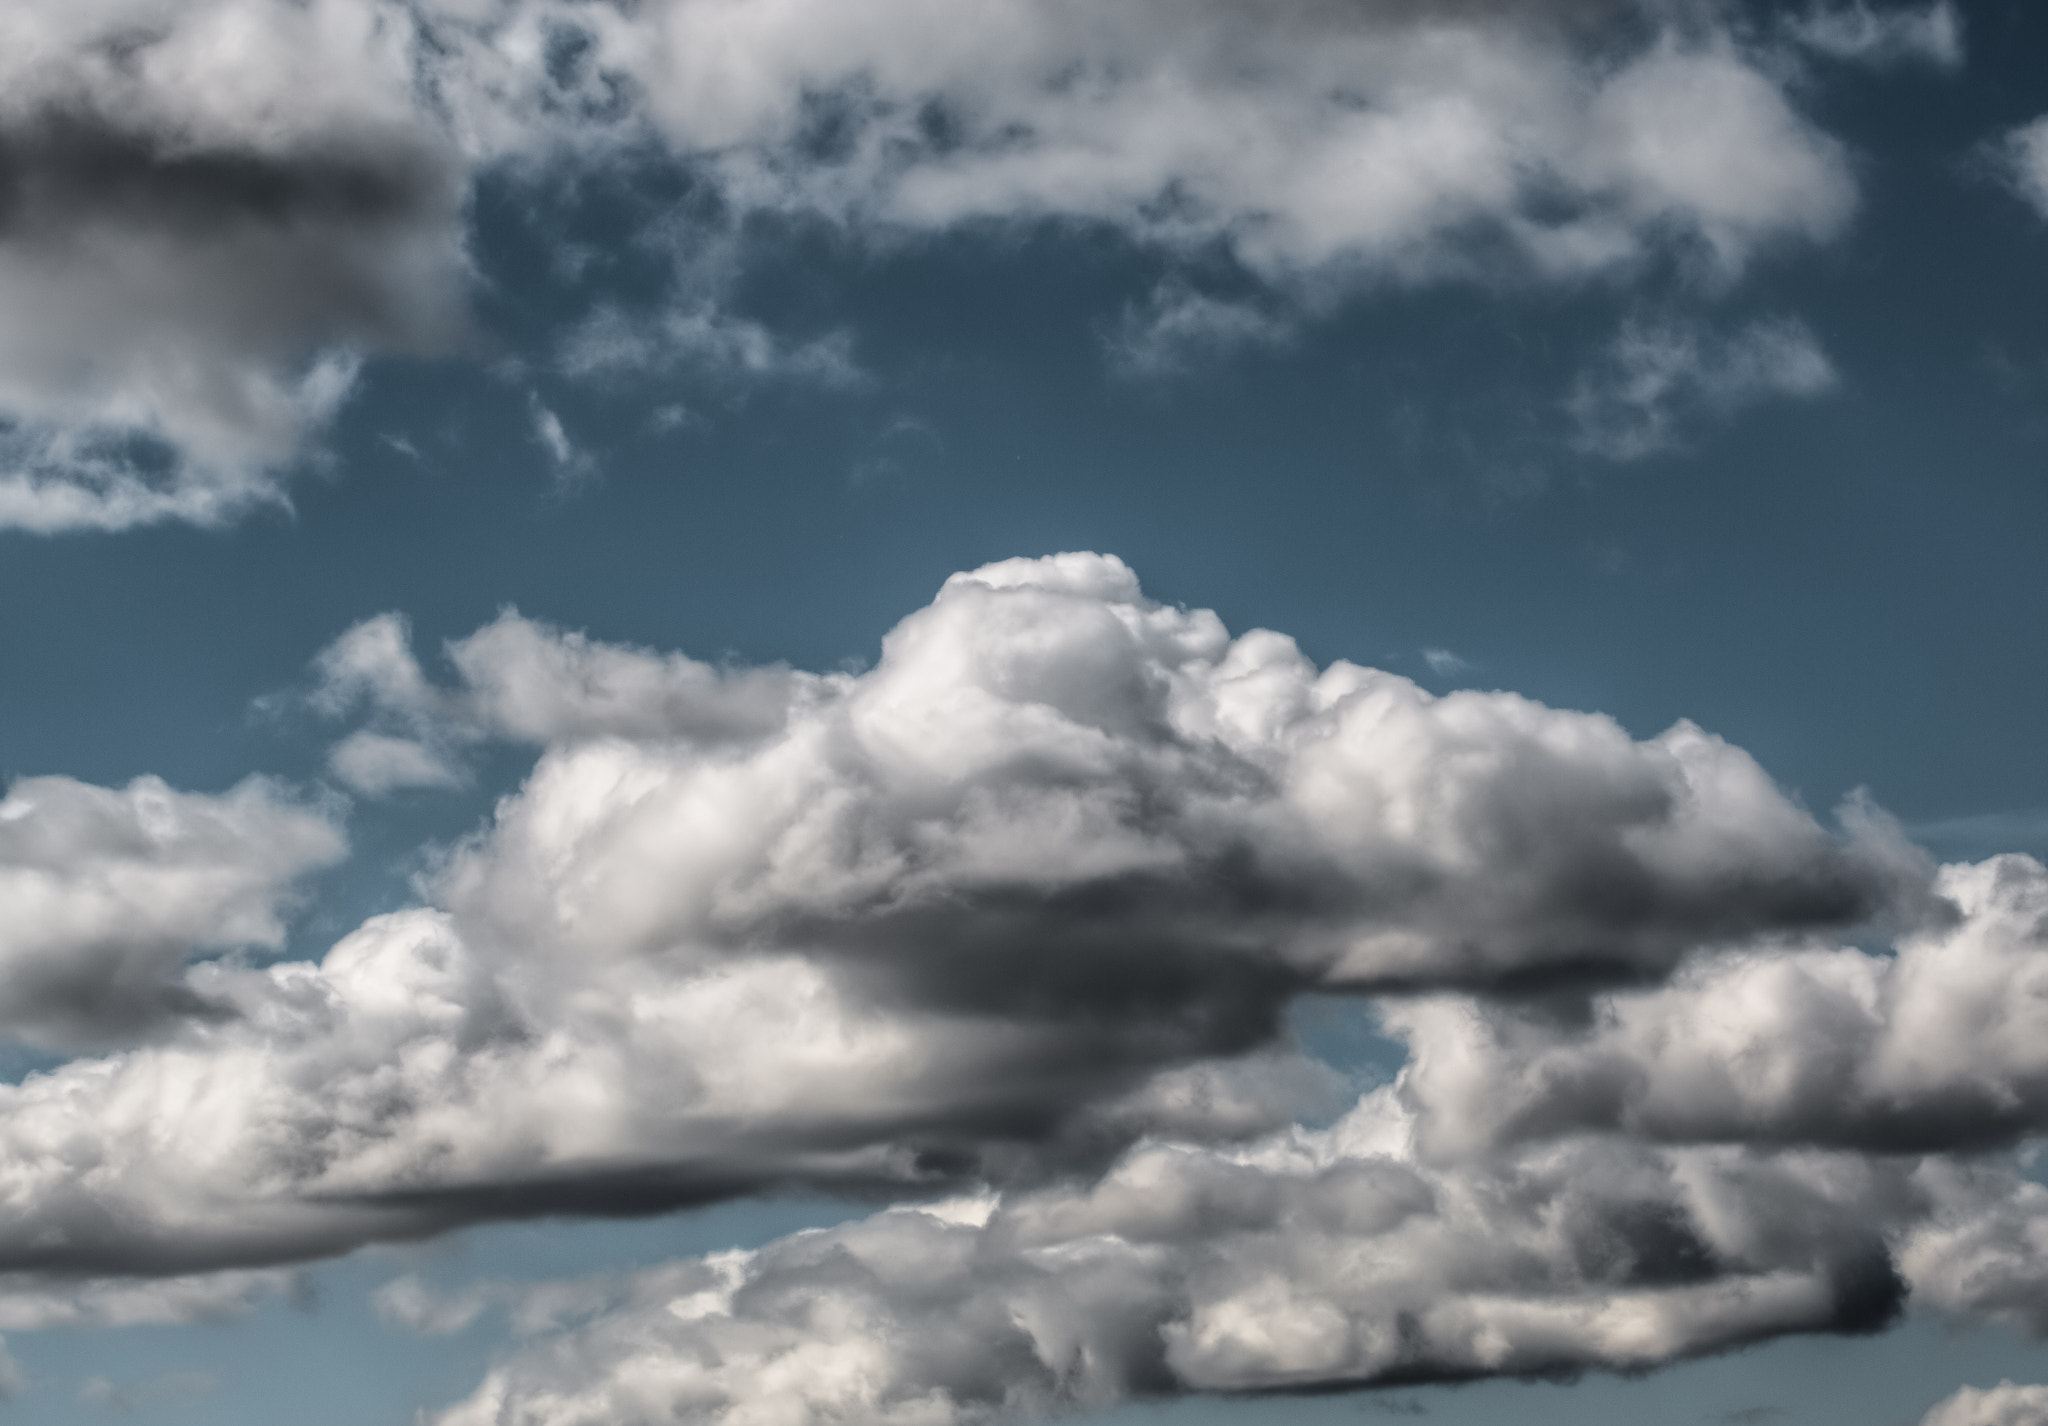 Photograph clouds by Leif Sohlman on 500px